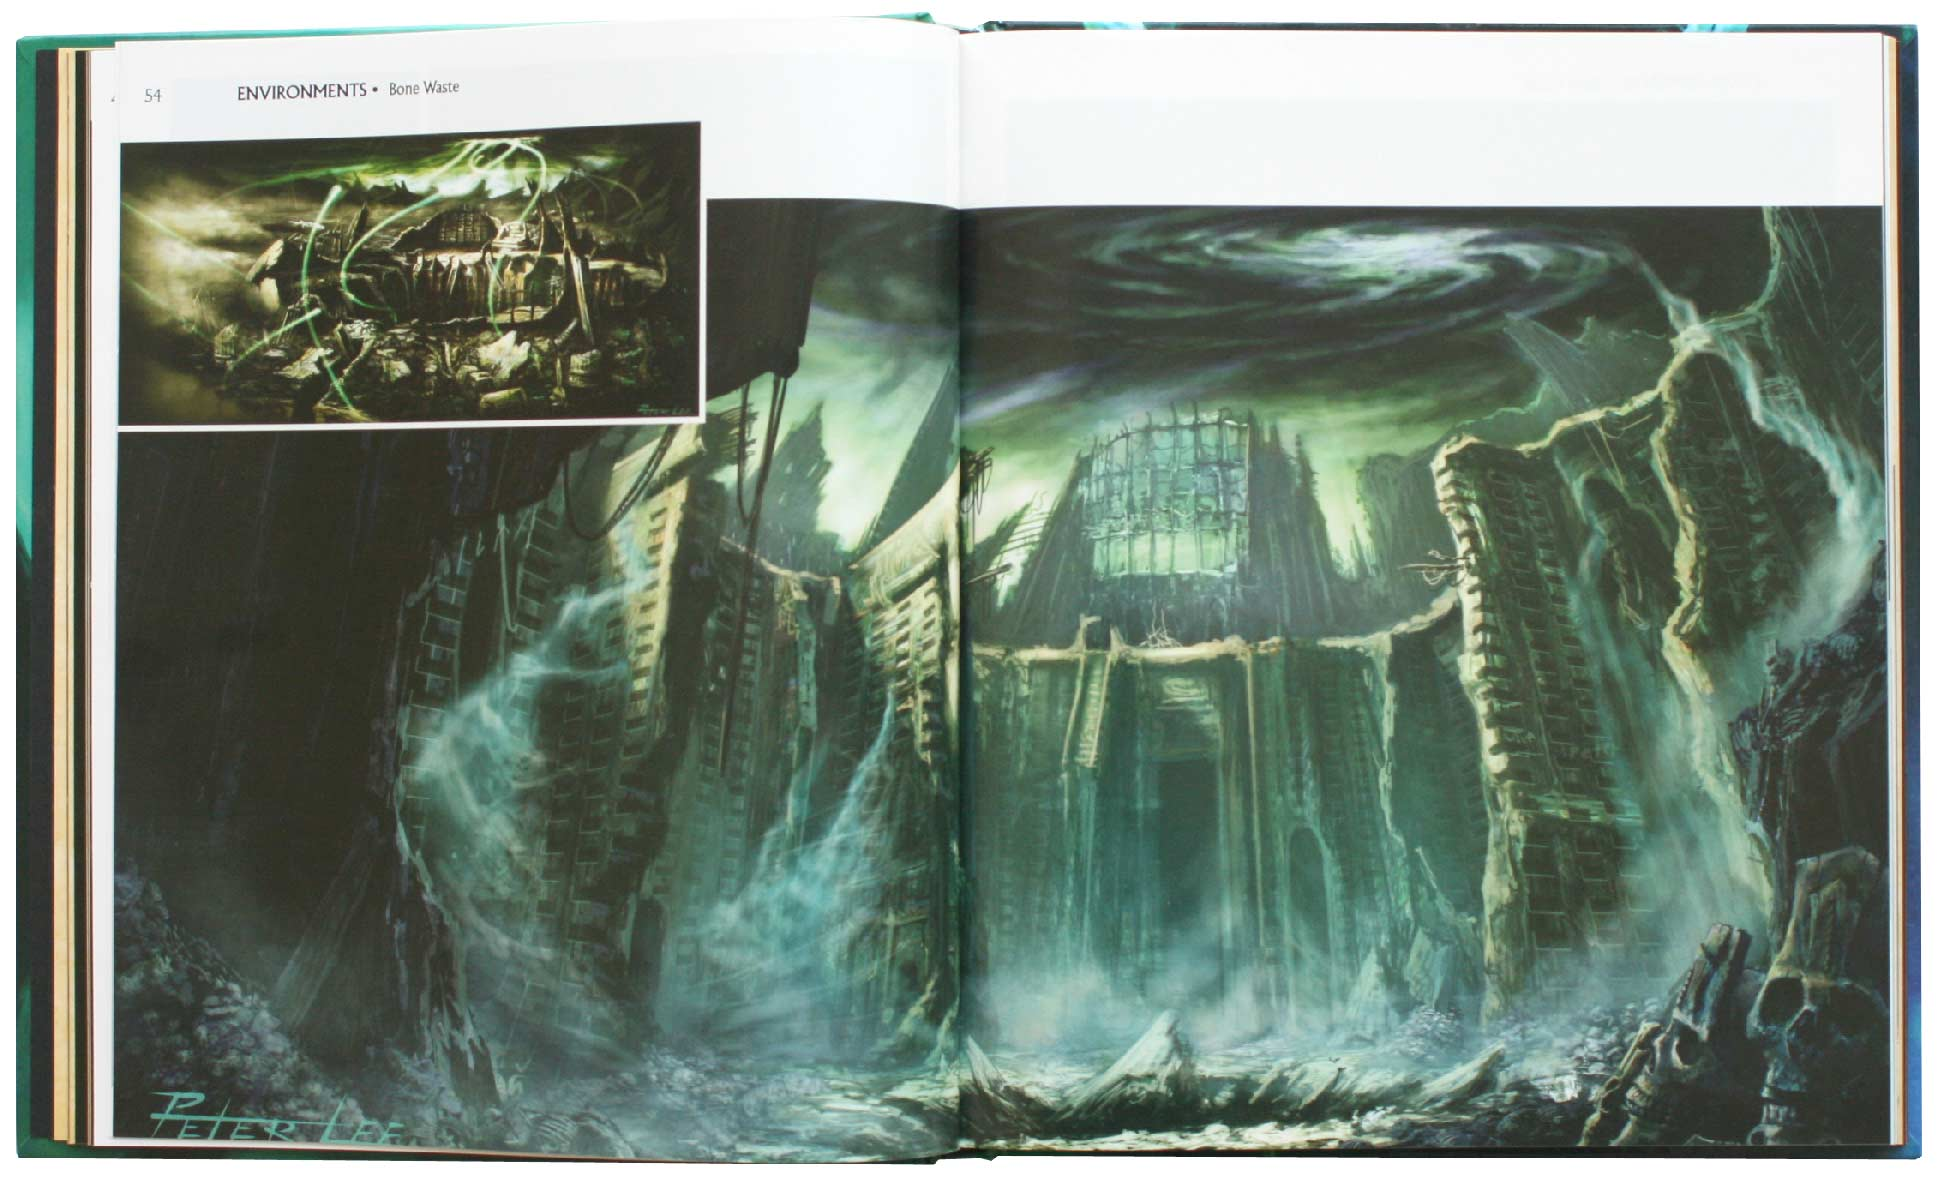 Page 54 et 55 de l'Art book : The Art of the Burning Crusade (World of Warcraft)